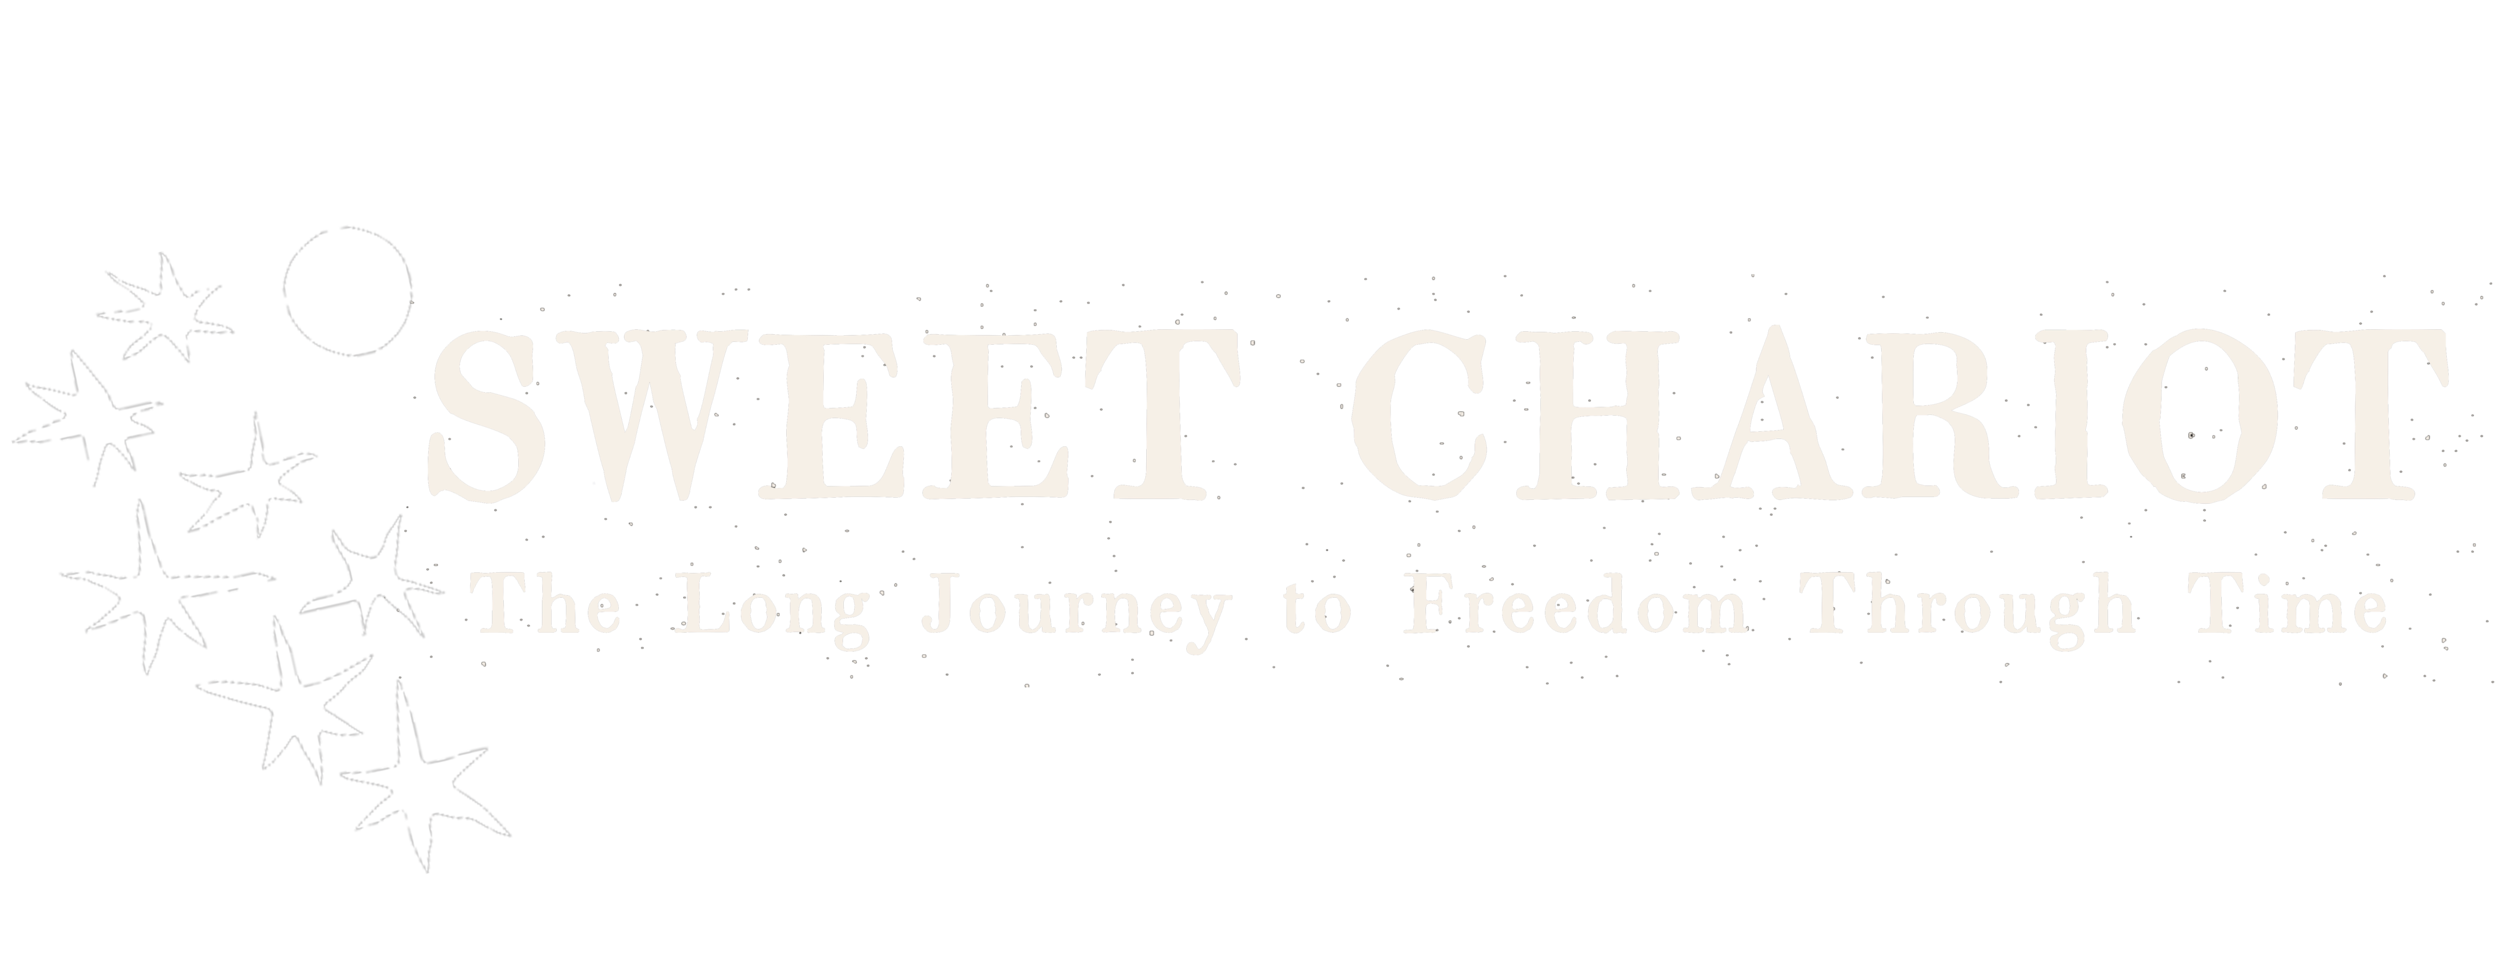 SweetChariot-header-2.png